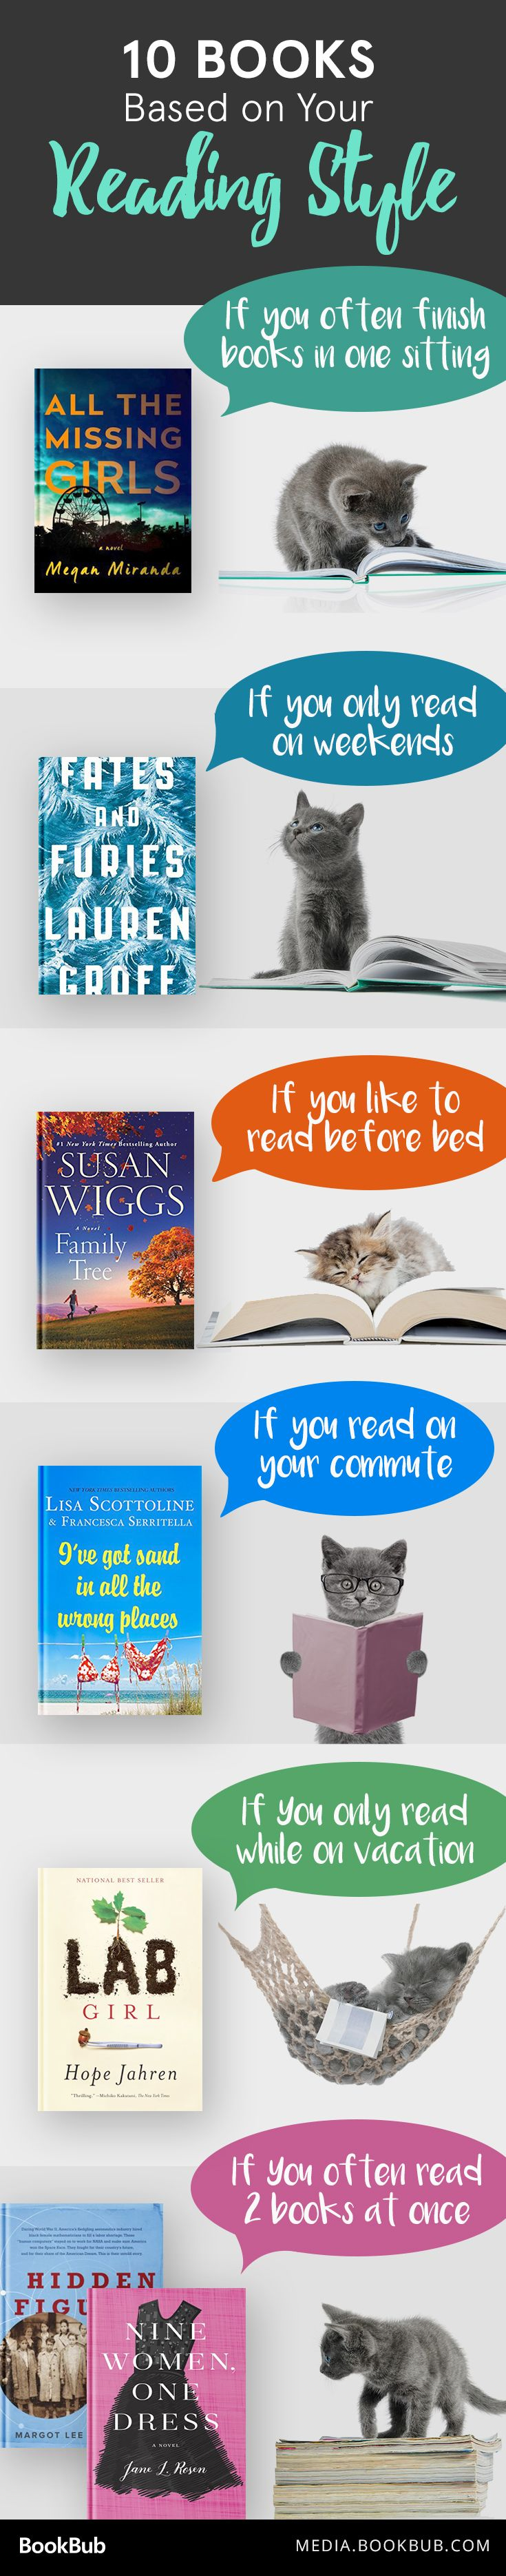 10 Books To Read Based On Your Reading Style